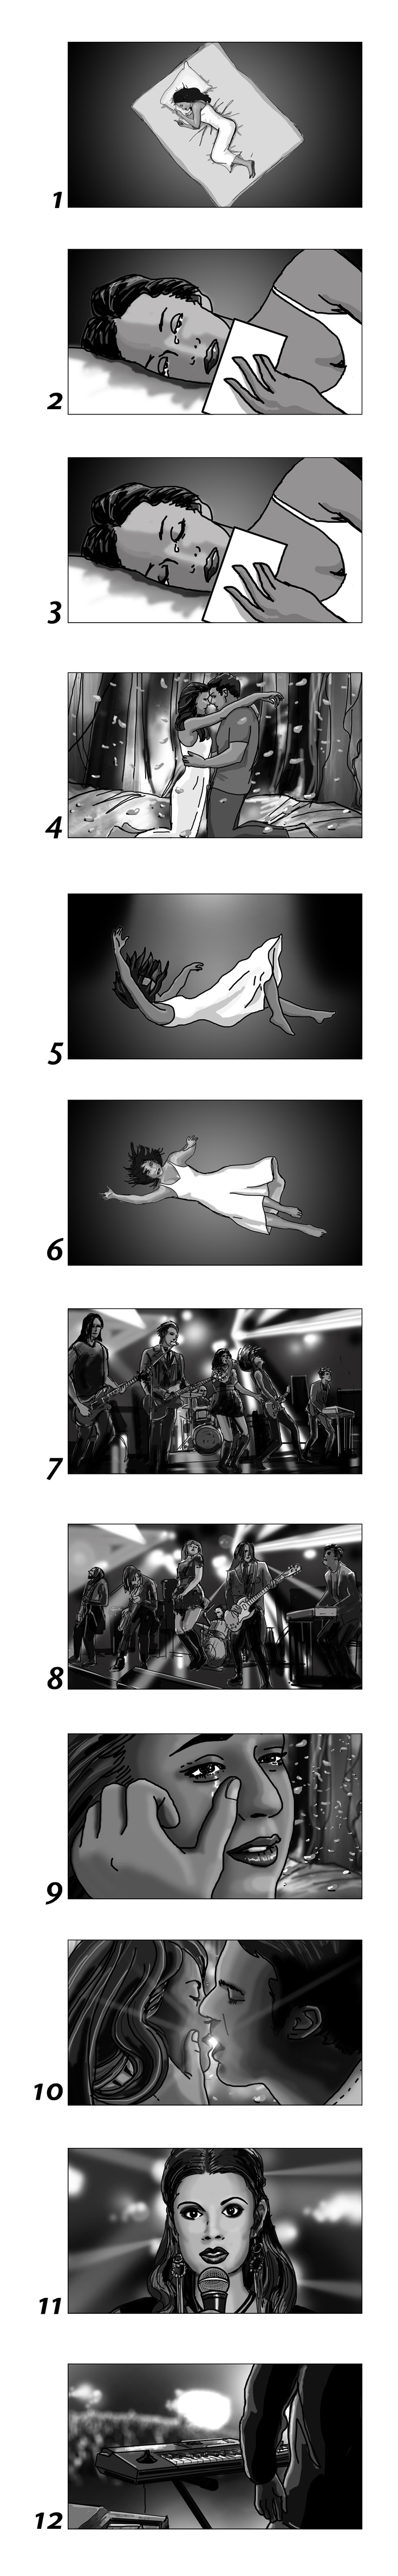 Storyboards for films, commercials and music videos by Cuong Huynh